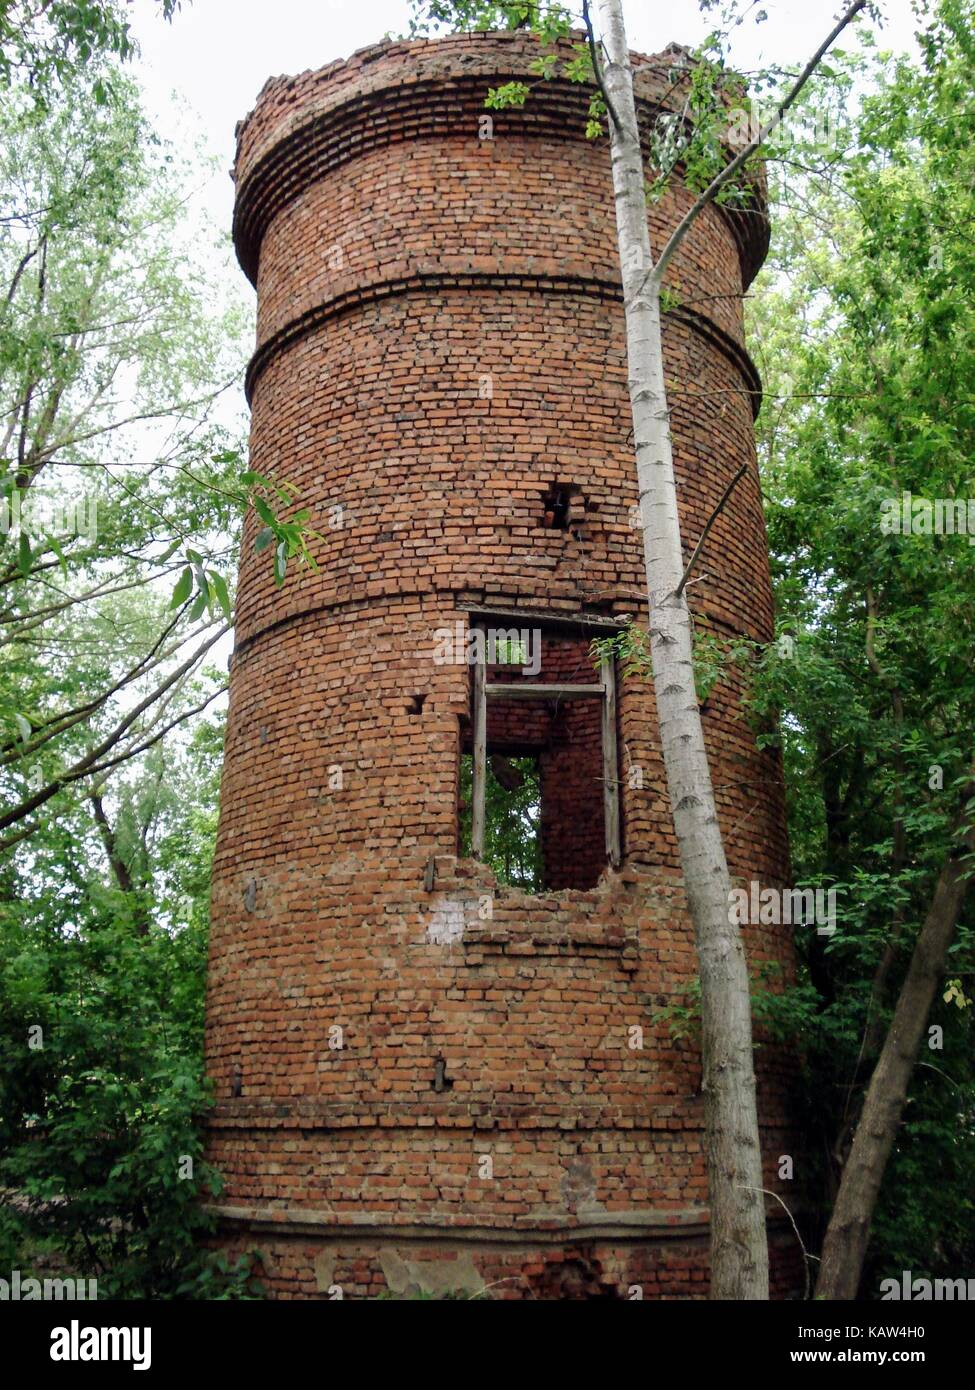 Destroyed water tower of red brick in Russia. She is about 120 years old - it was built before the revolution. - Stock Image